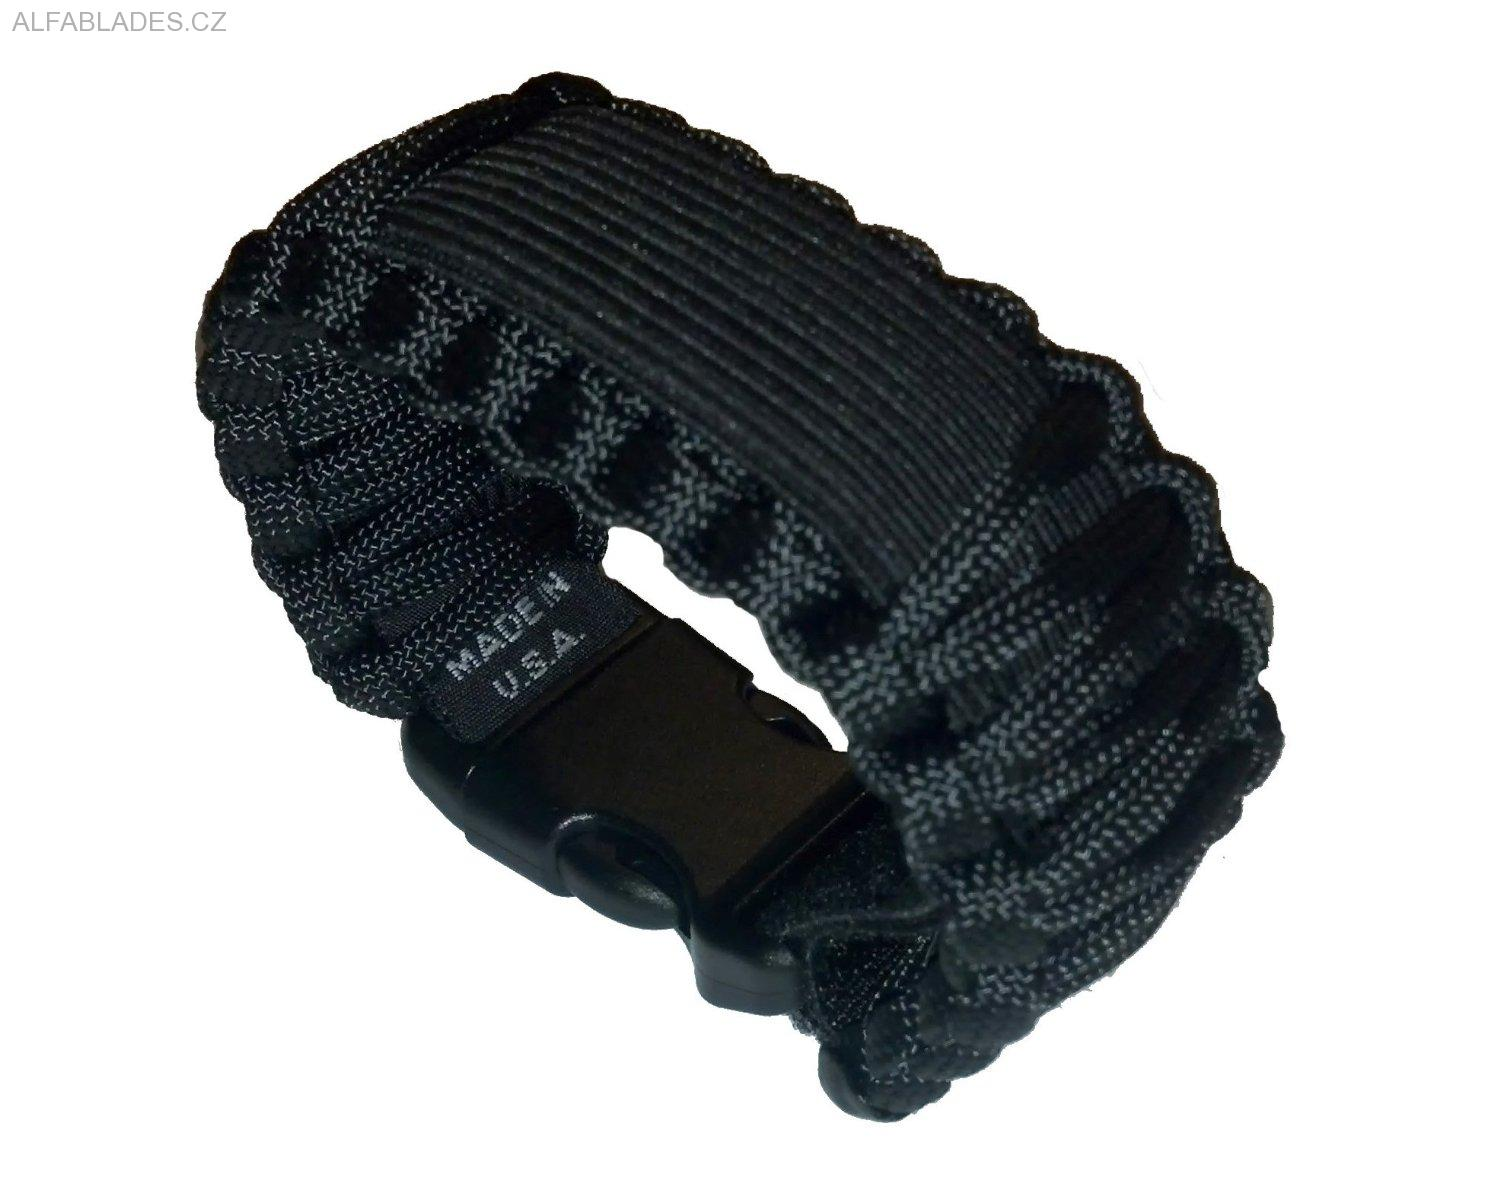 SURVCO TACTICAL Paracord Watch Band Black